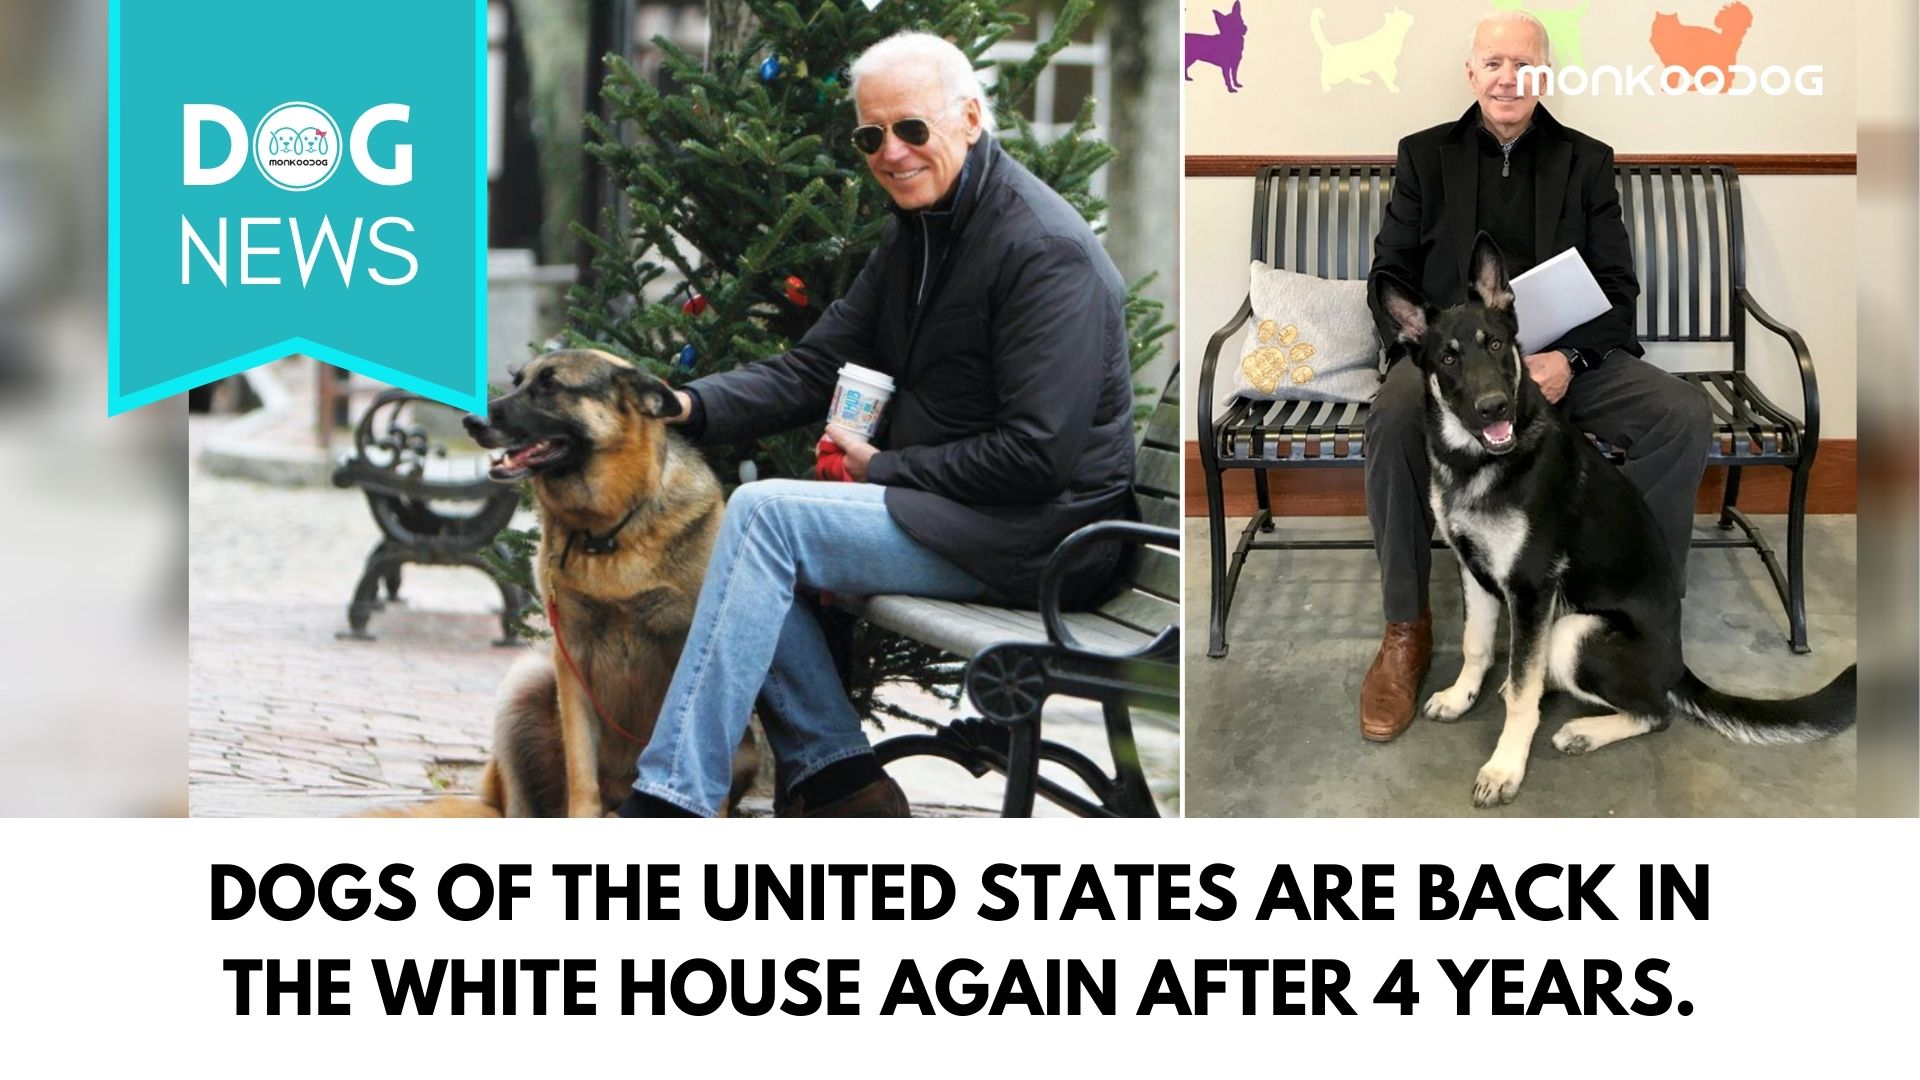 DOTUS Are Going To Be Back In The White House As Biden Claims The Crown Of The President-ElectDOTUS Are Going To Be Back In The White House As Biden Claims The Crown Of The President-Elect